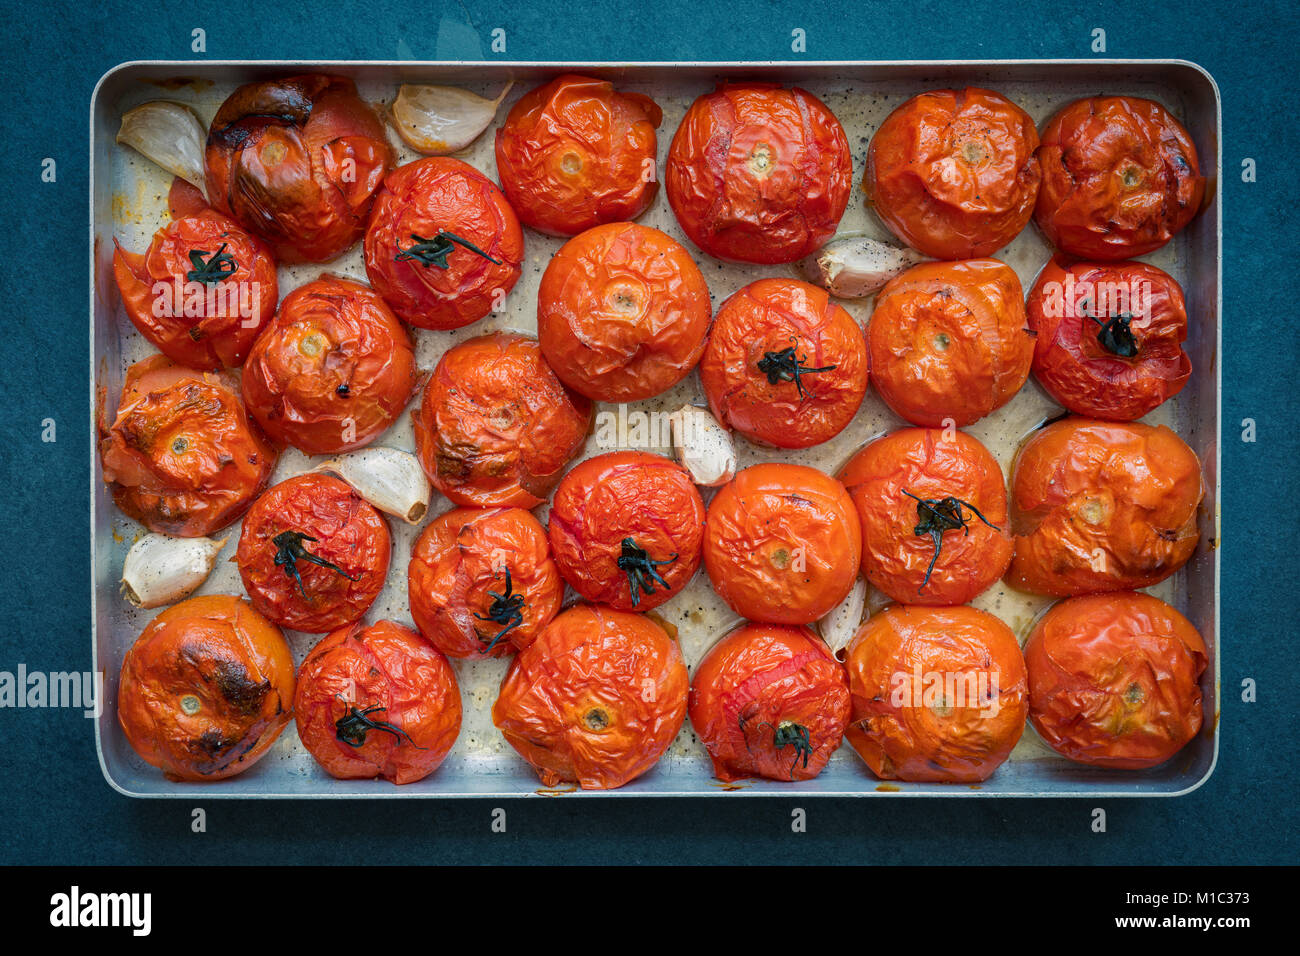 Roasted tomatoes and garlic in a baking tray on a slate background. Vintage filter applied - Stock Image